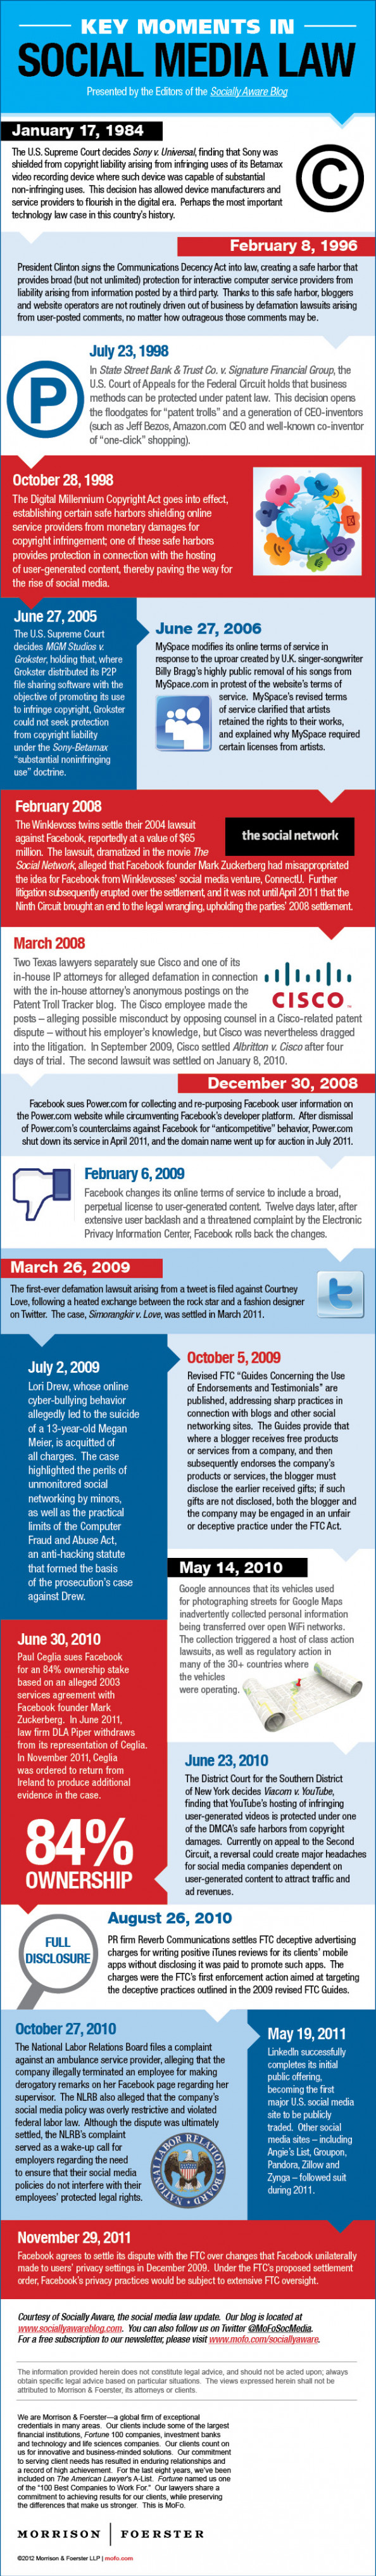 Key Milestones In Social Media Law Infographic